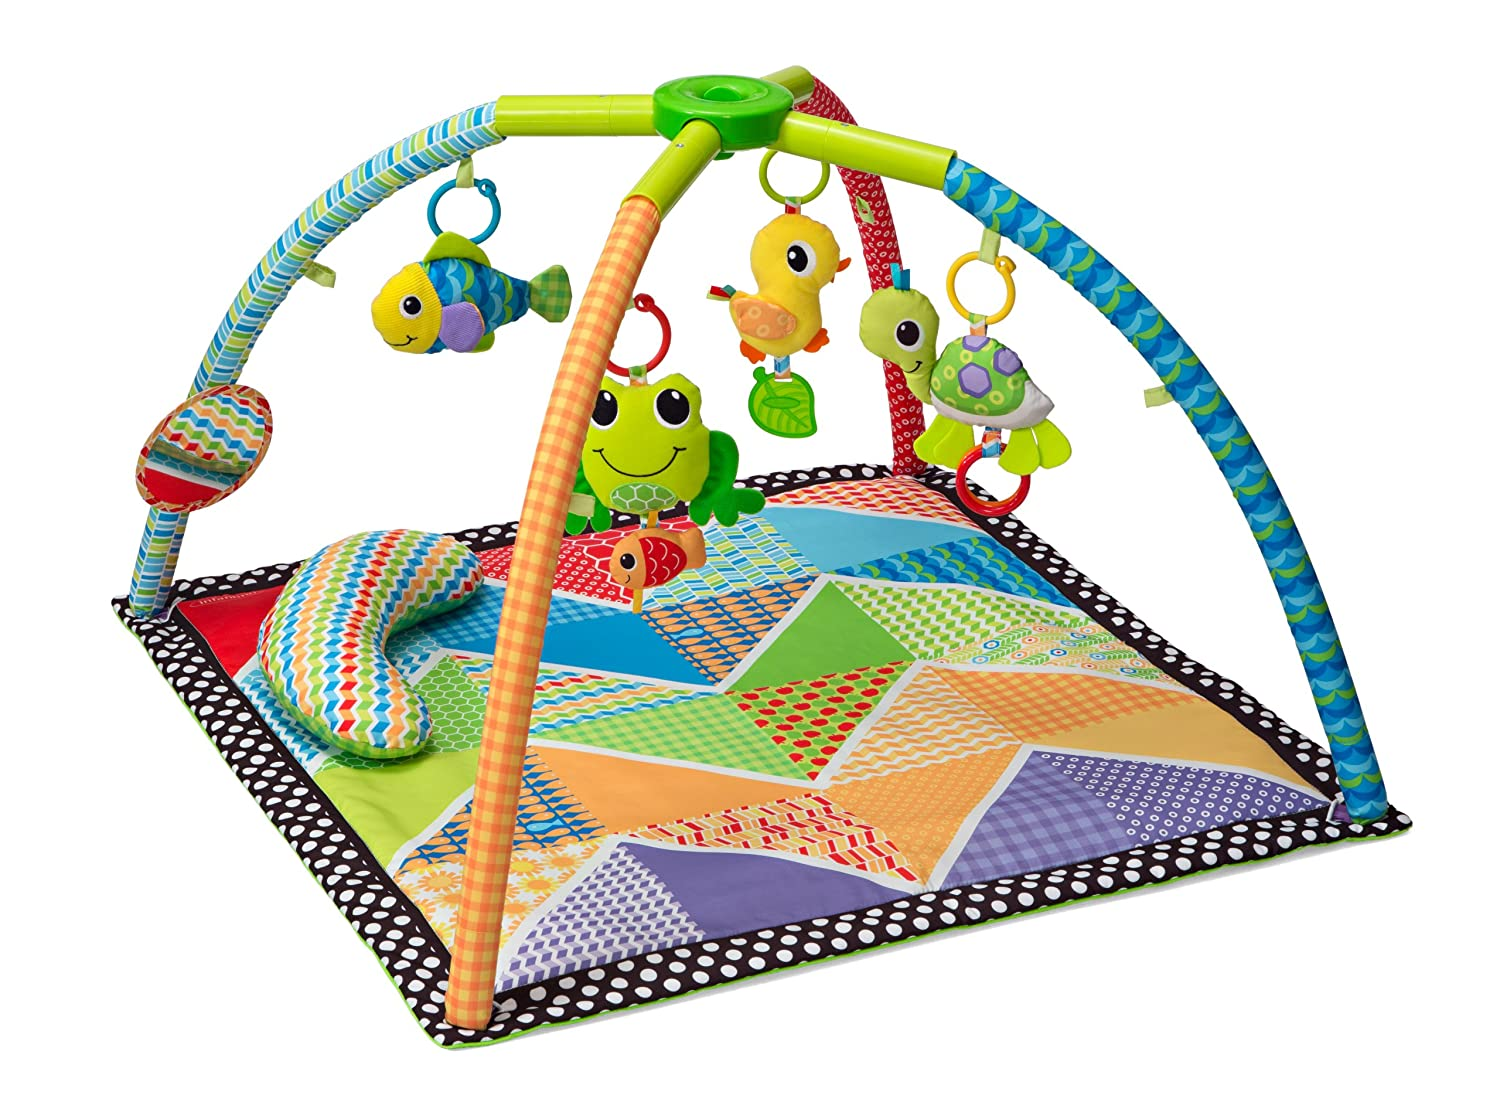 floor rug for baby gym play mat products carpet children floors soft activity child mats puzzle